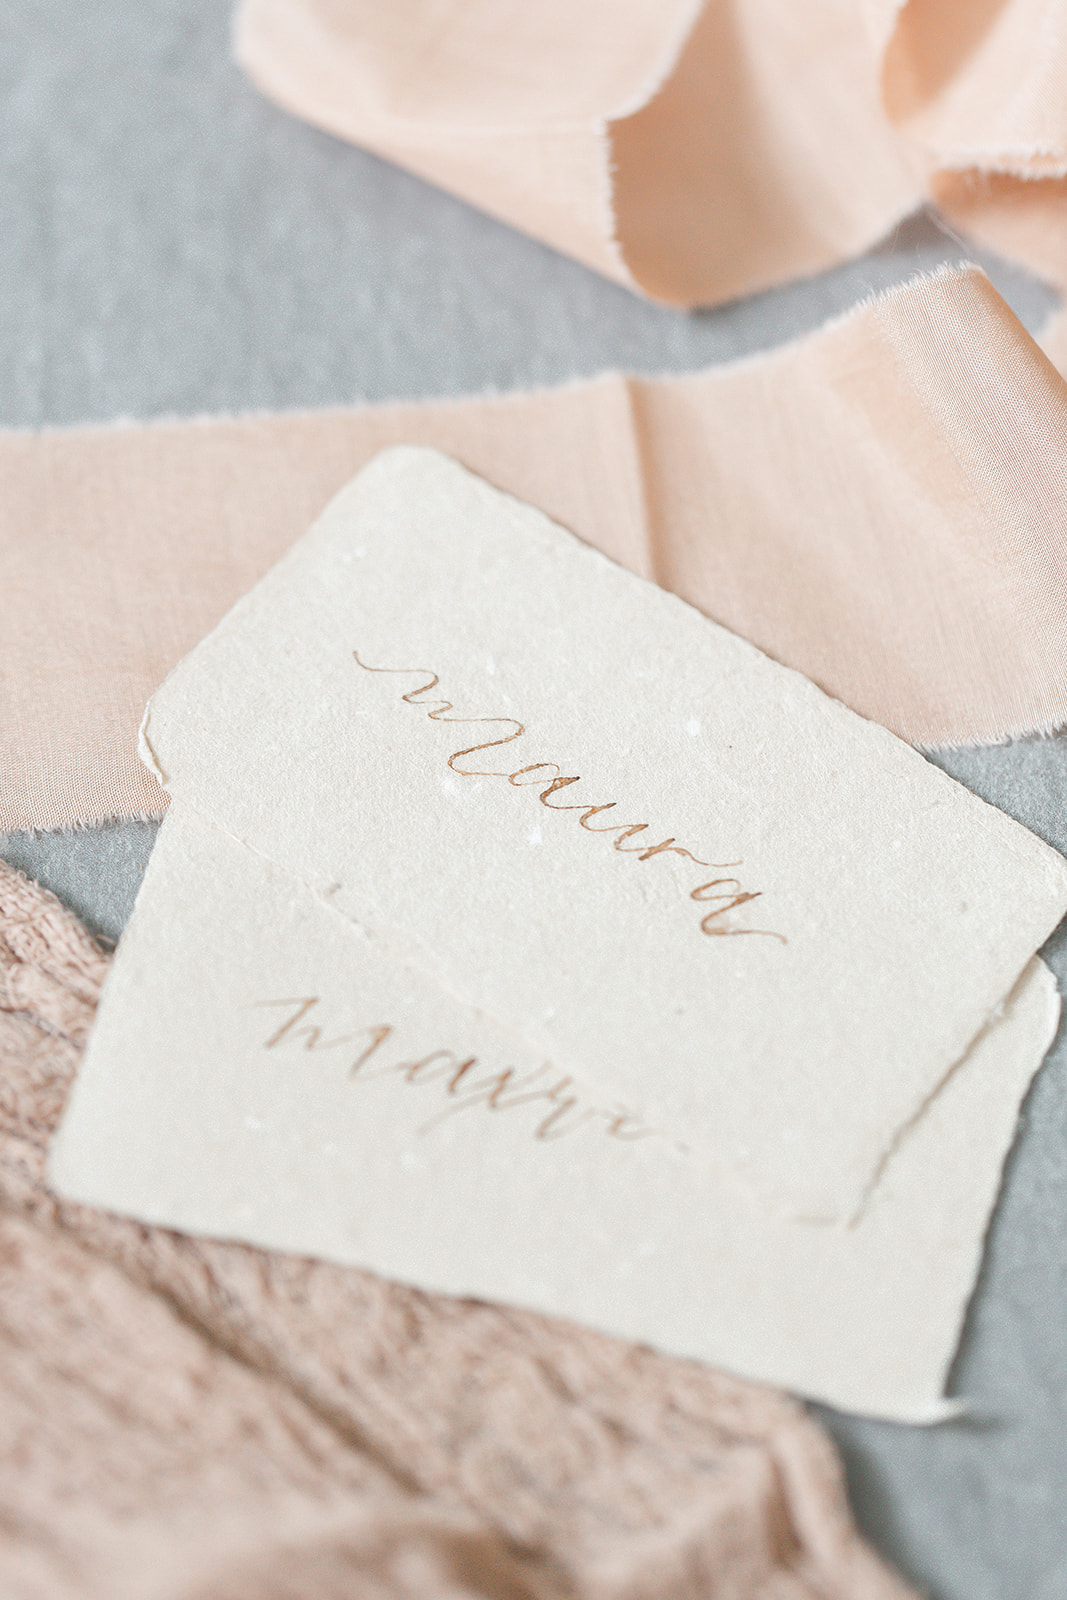 Dreamy Autumn Inspired Wedding Escort Cards - Kevin & Aly Photography